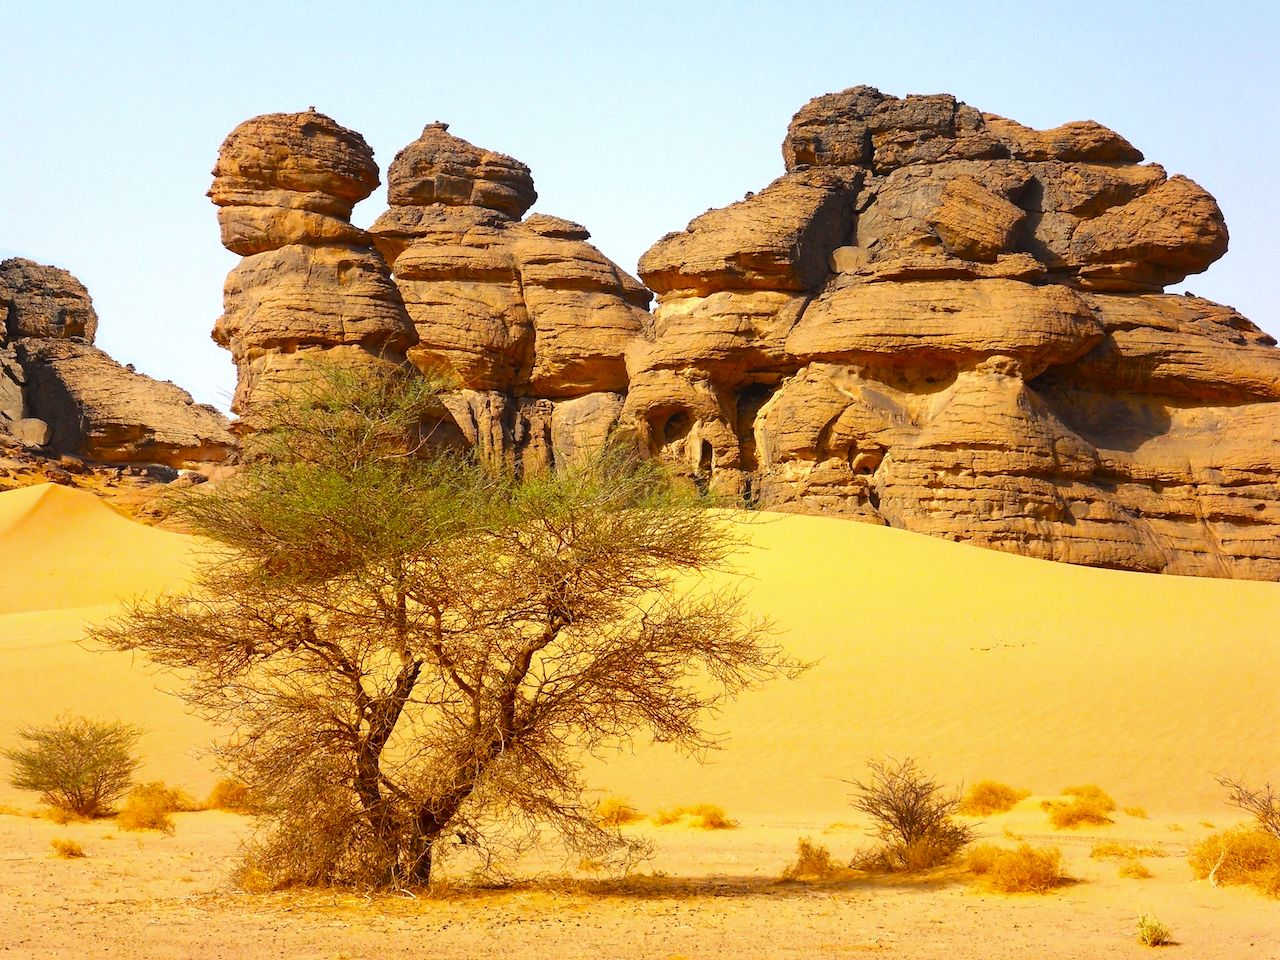 Sandstone formations in the Sahara at the Ennedi Plateau near chad